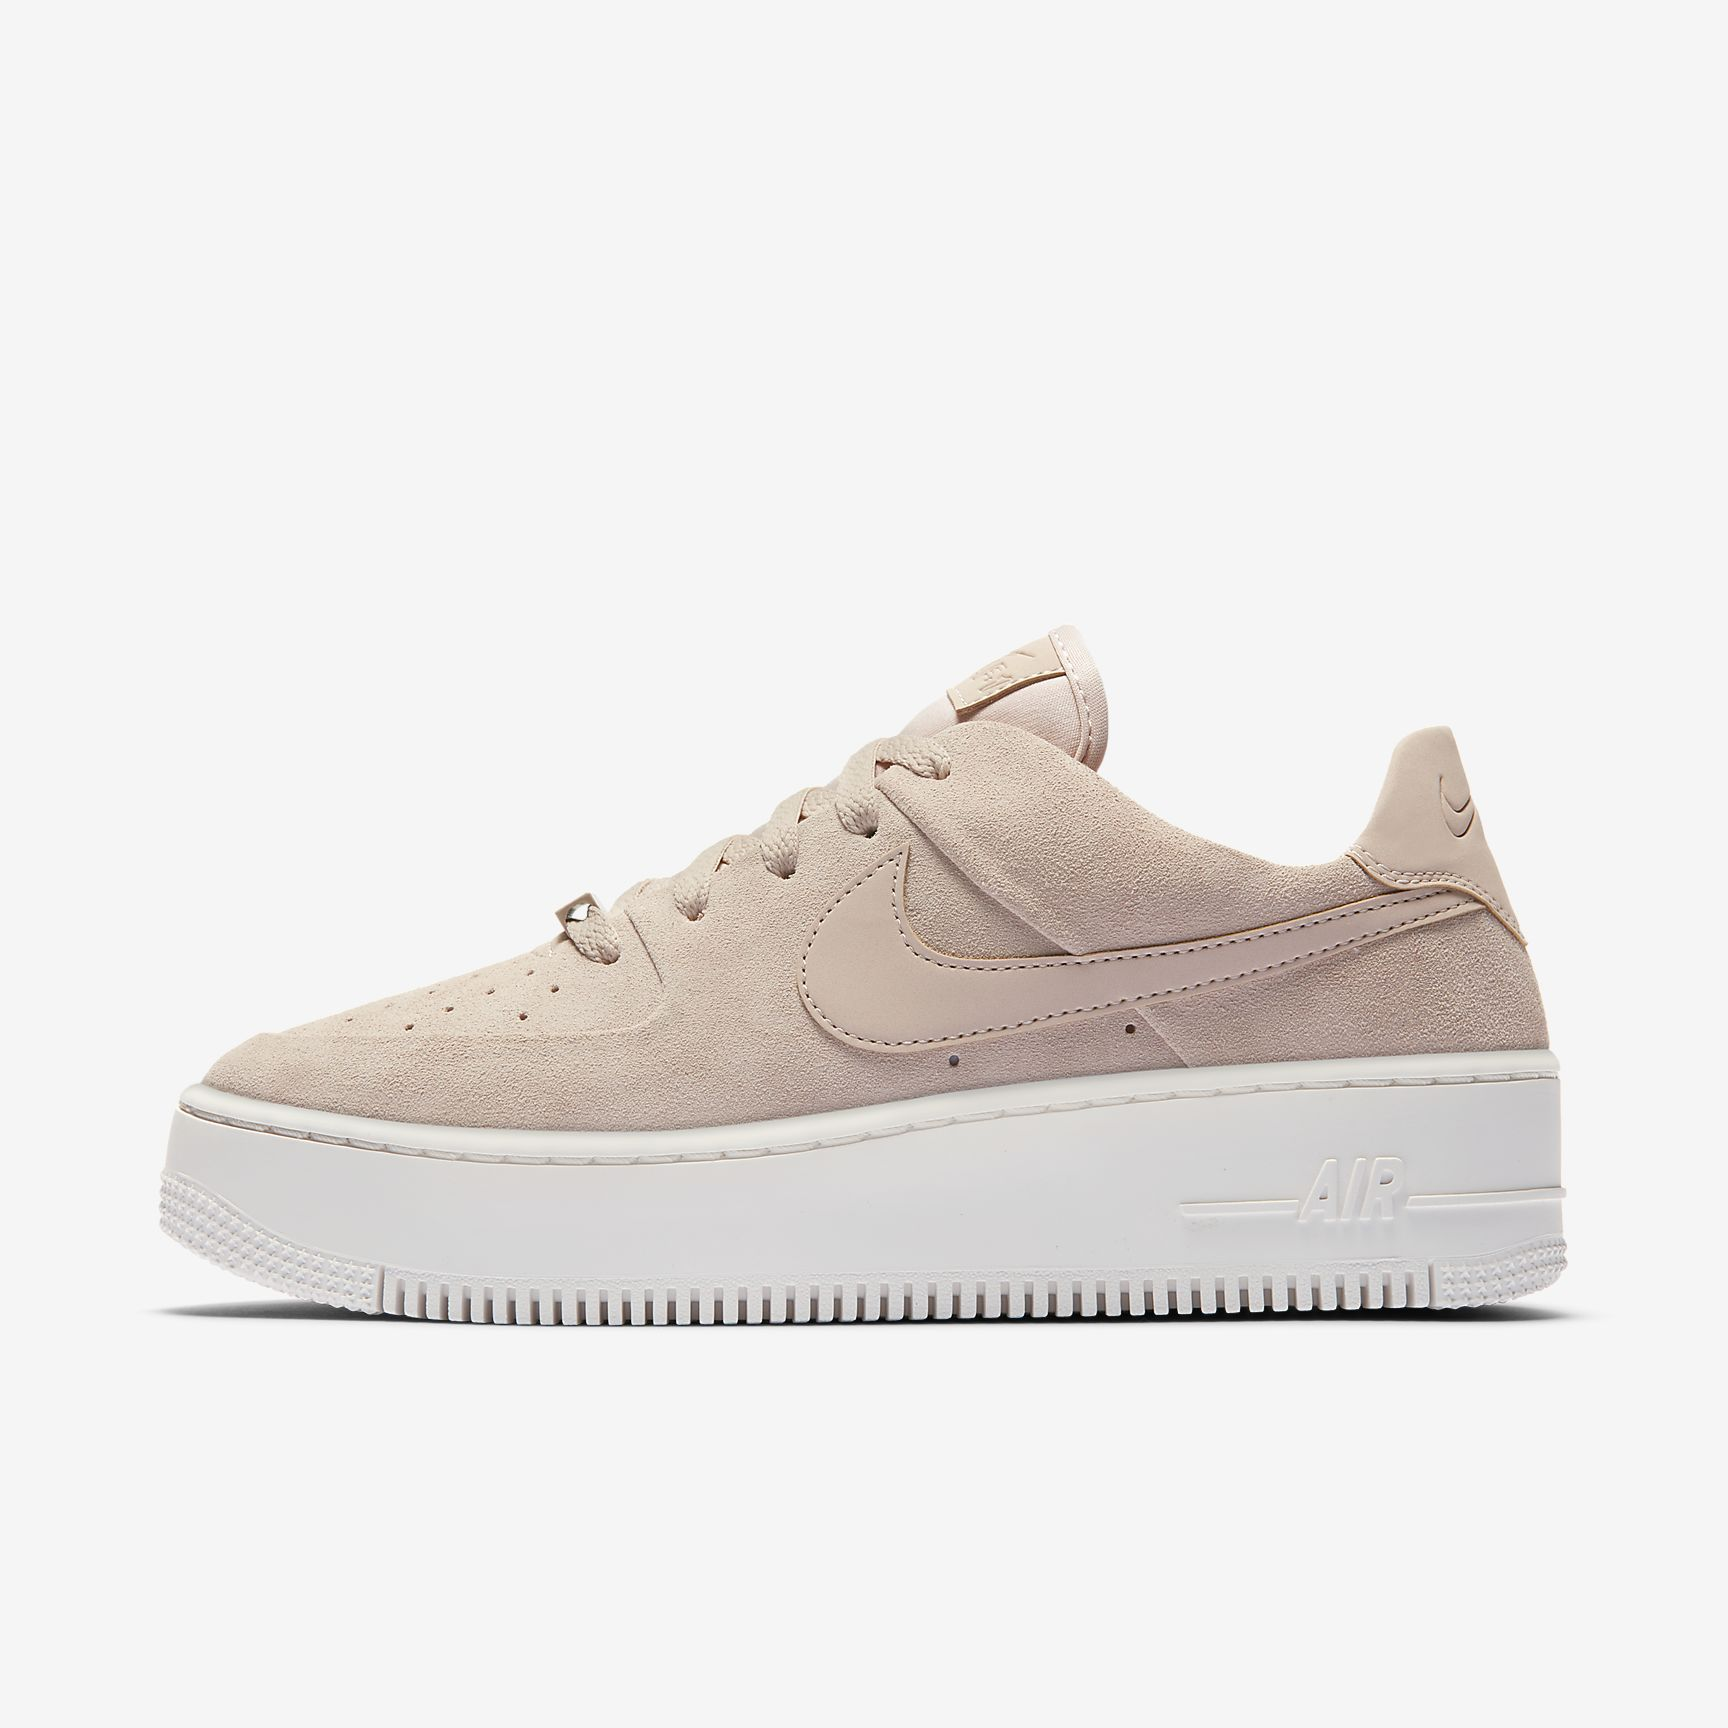 2e5df86e36 Air Force 1 Sage Low Women's Shoe in 2019 | b u y a b l e | Nike air ...